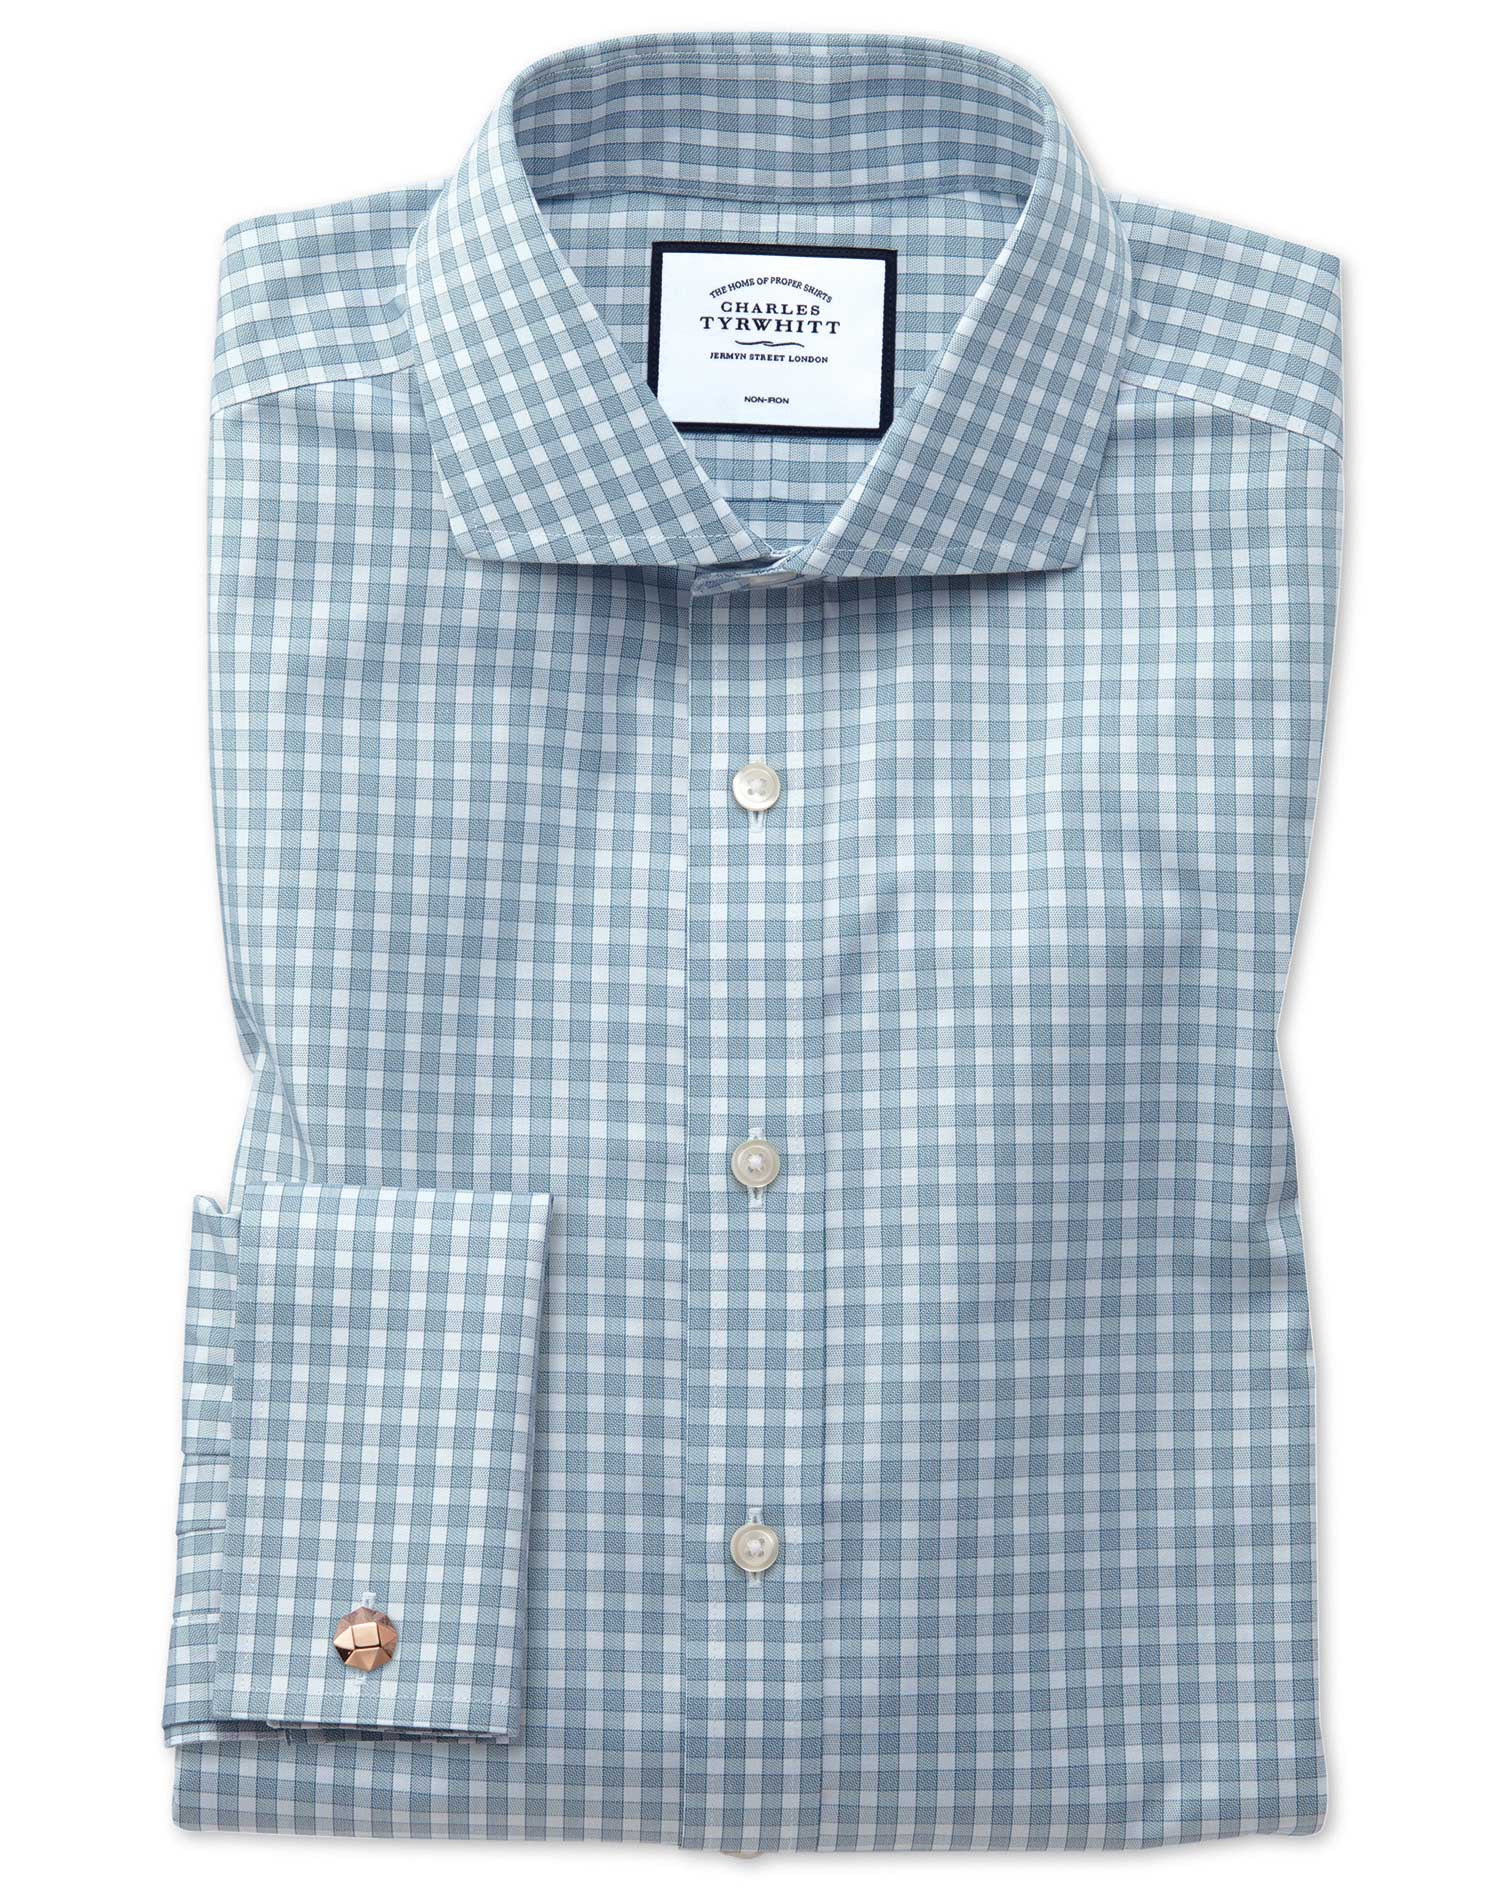 Extra Slim Fit Non-Iron Twill Gingham Teal Cotton Formal Shirt Single Cuff Size 14.5/32 by Charles T